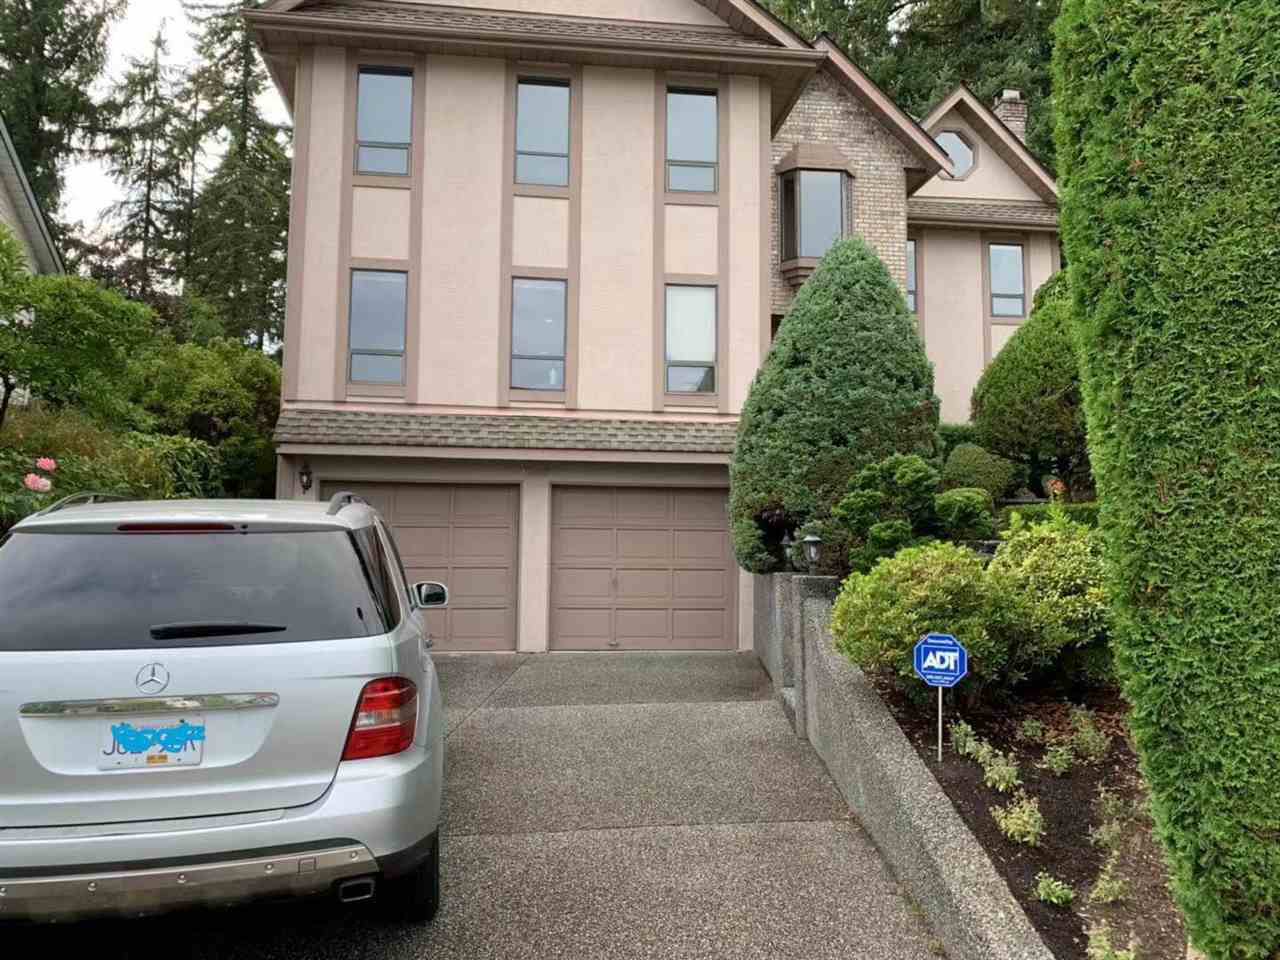 Main Photo: 1300 DURANT Drive in Coquitlam: Scott Creek House for sale : MLS®# R2404583